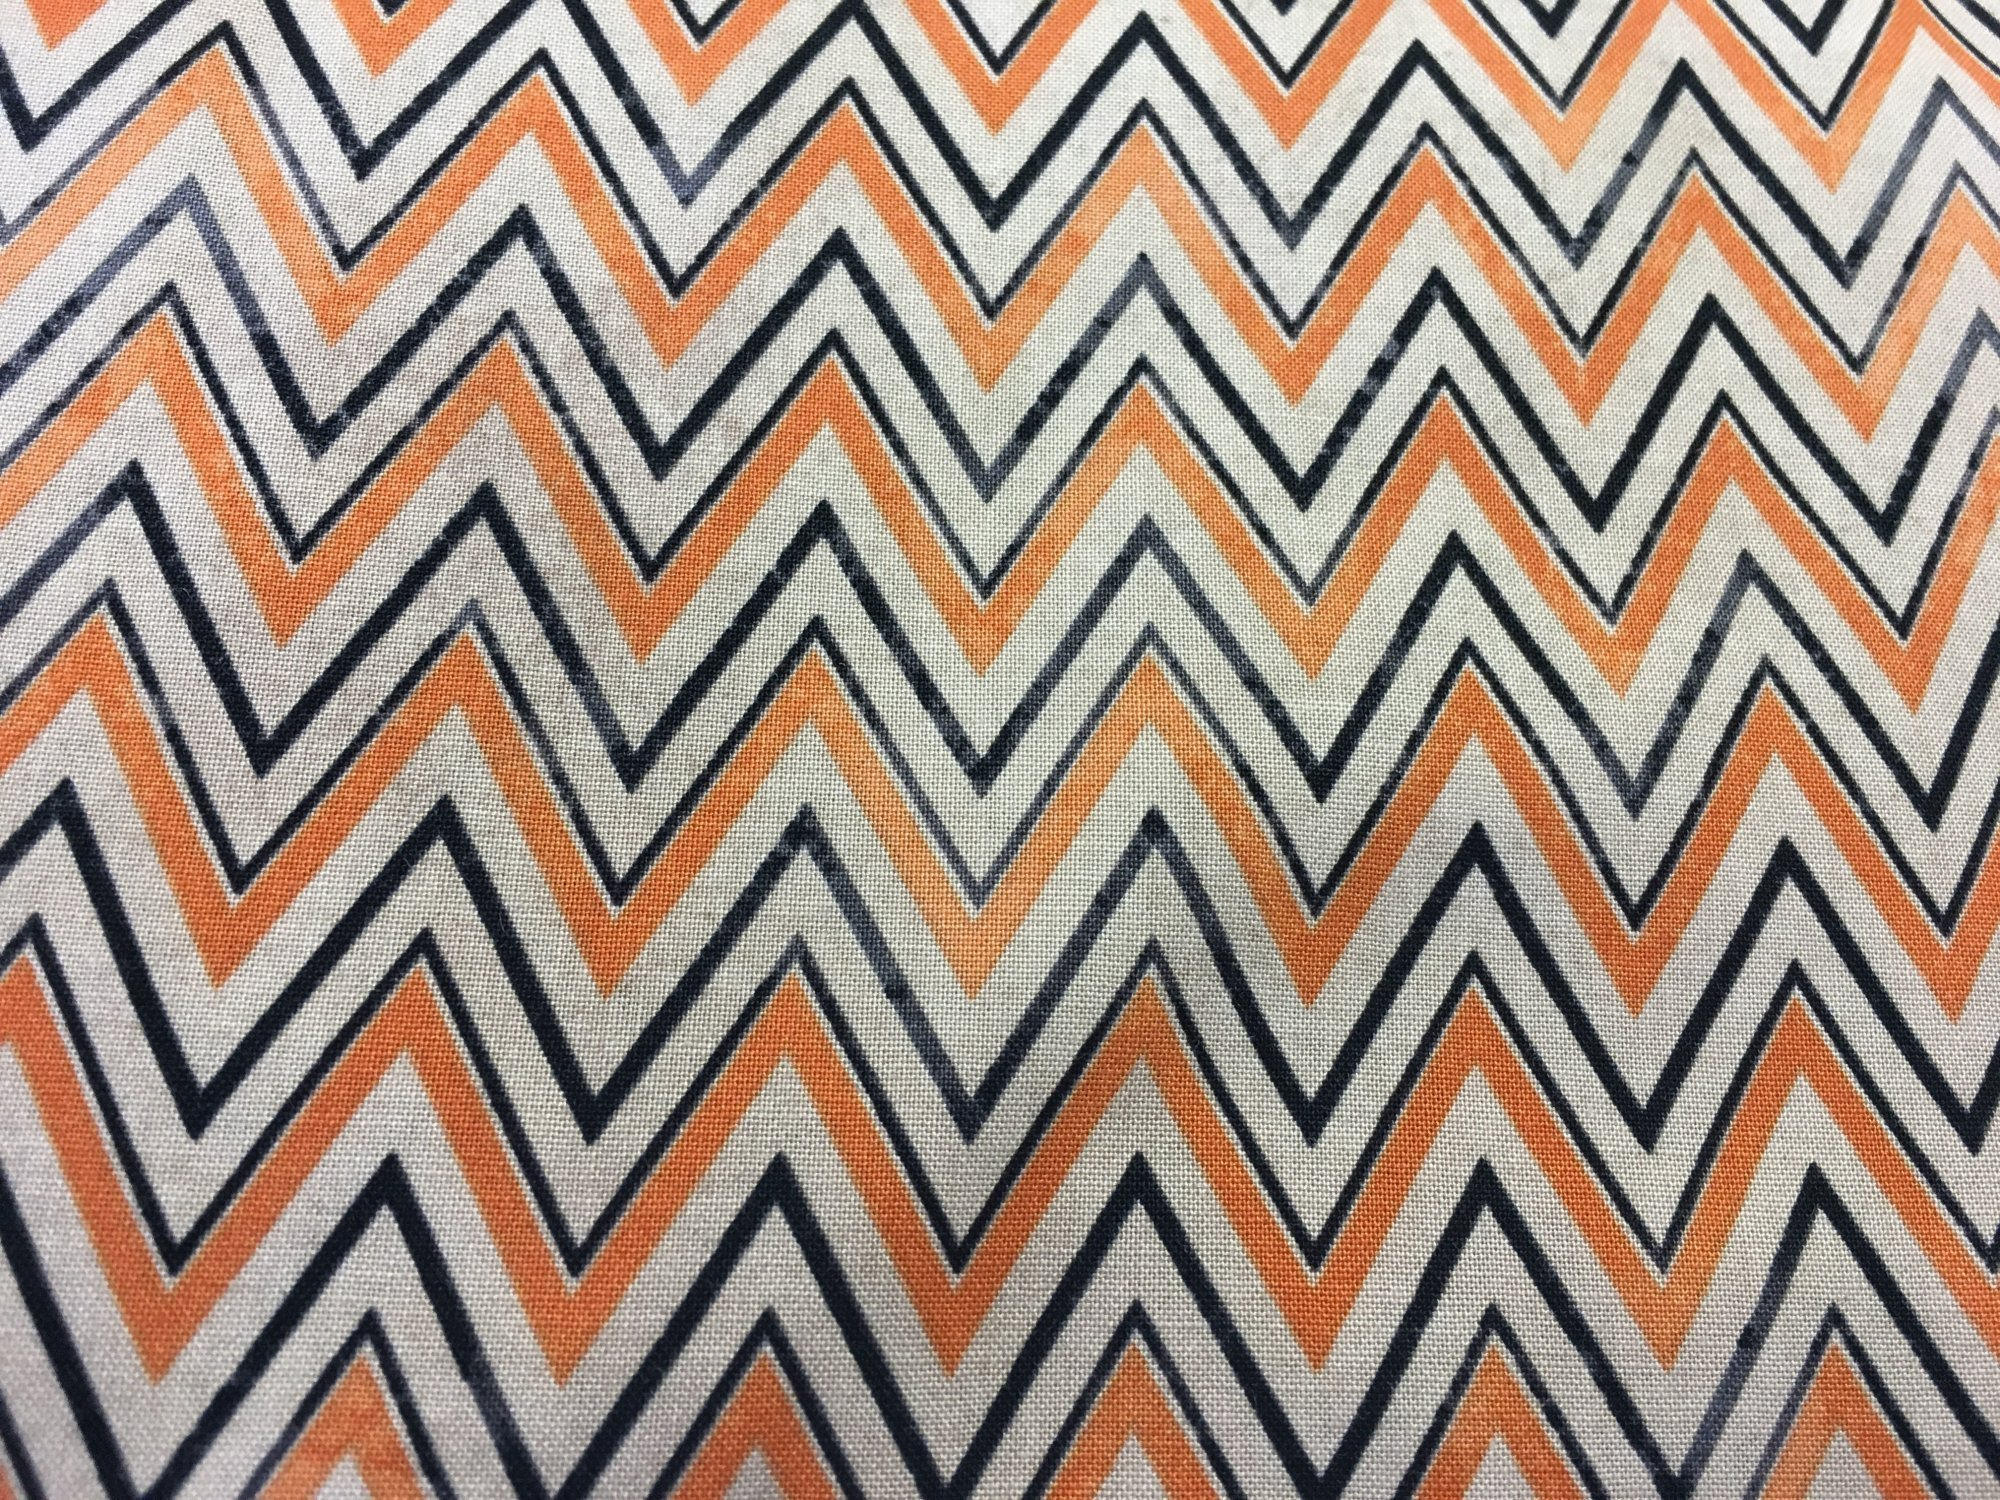 Materialize -ZigZag by Tim Holtz